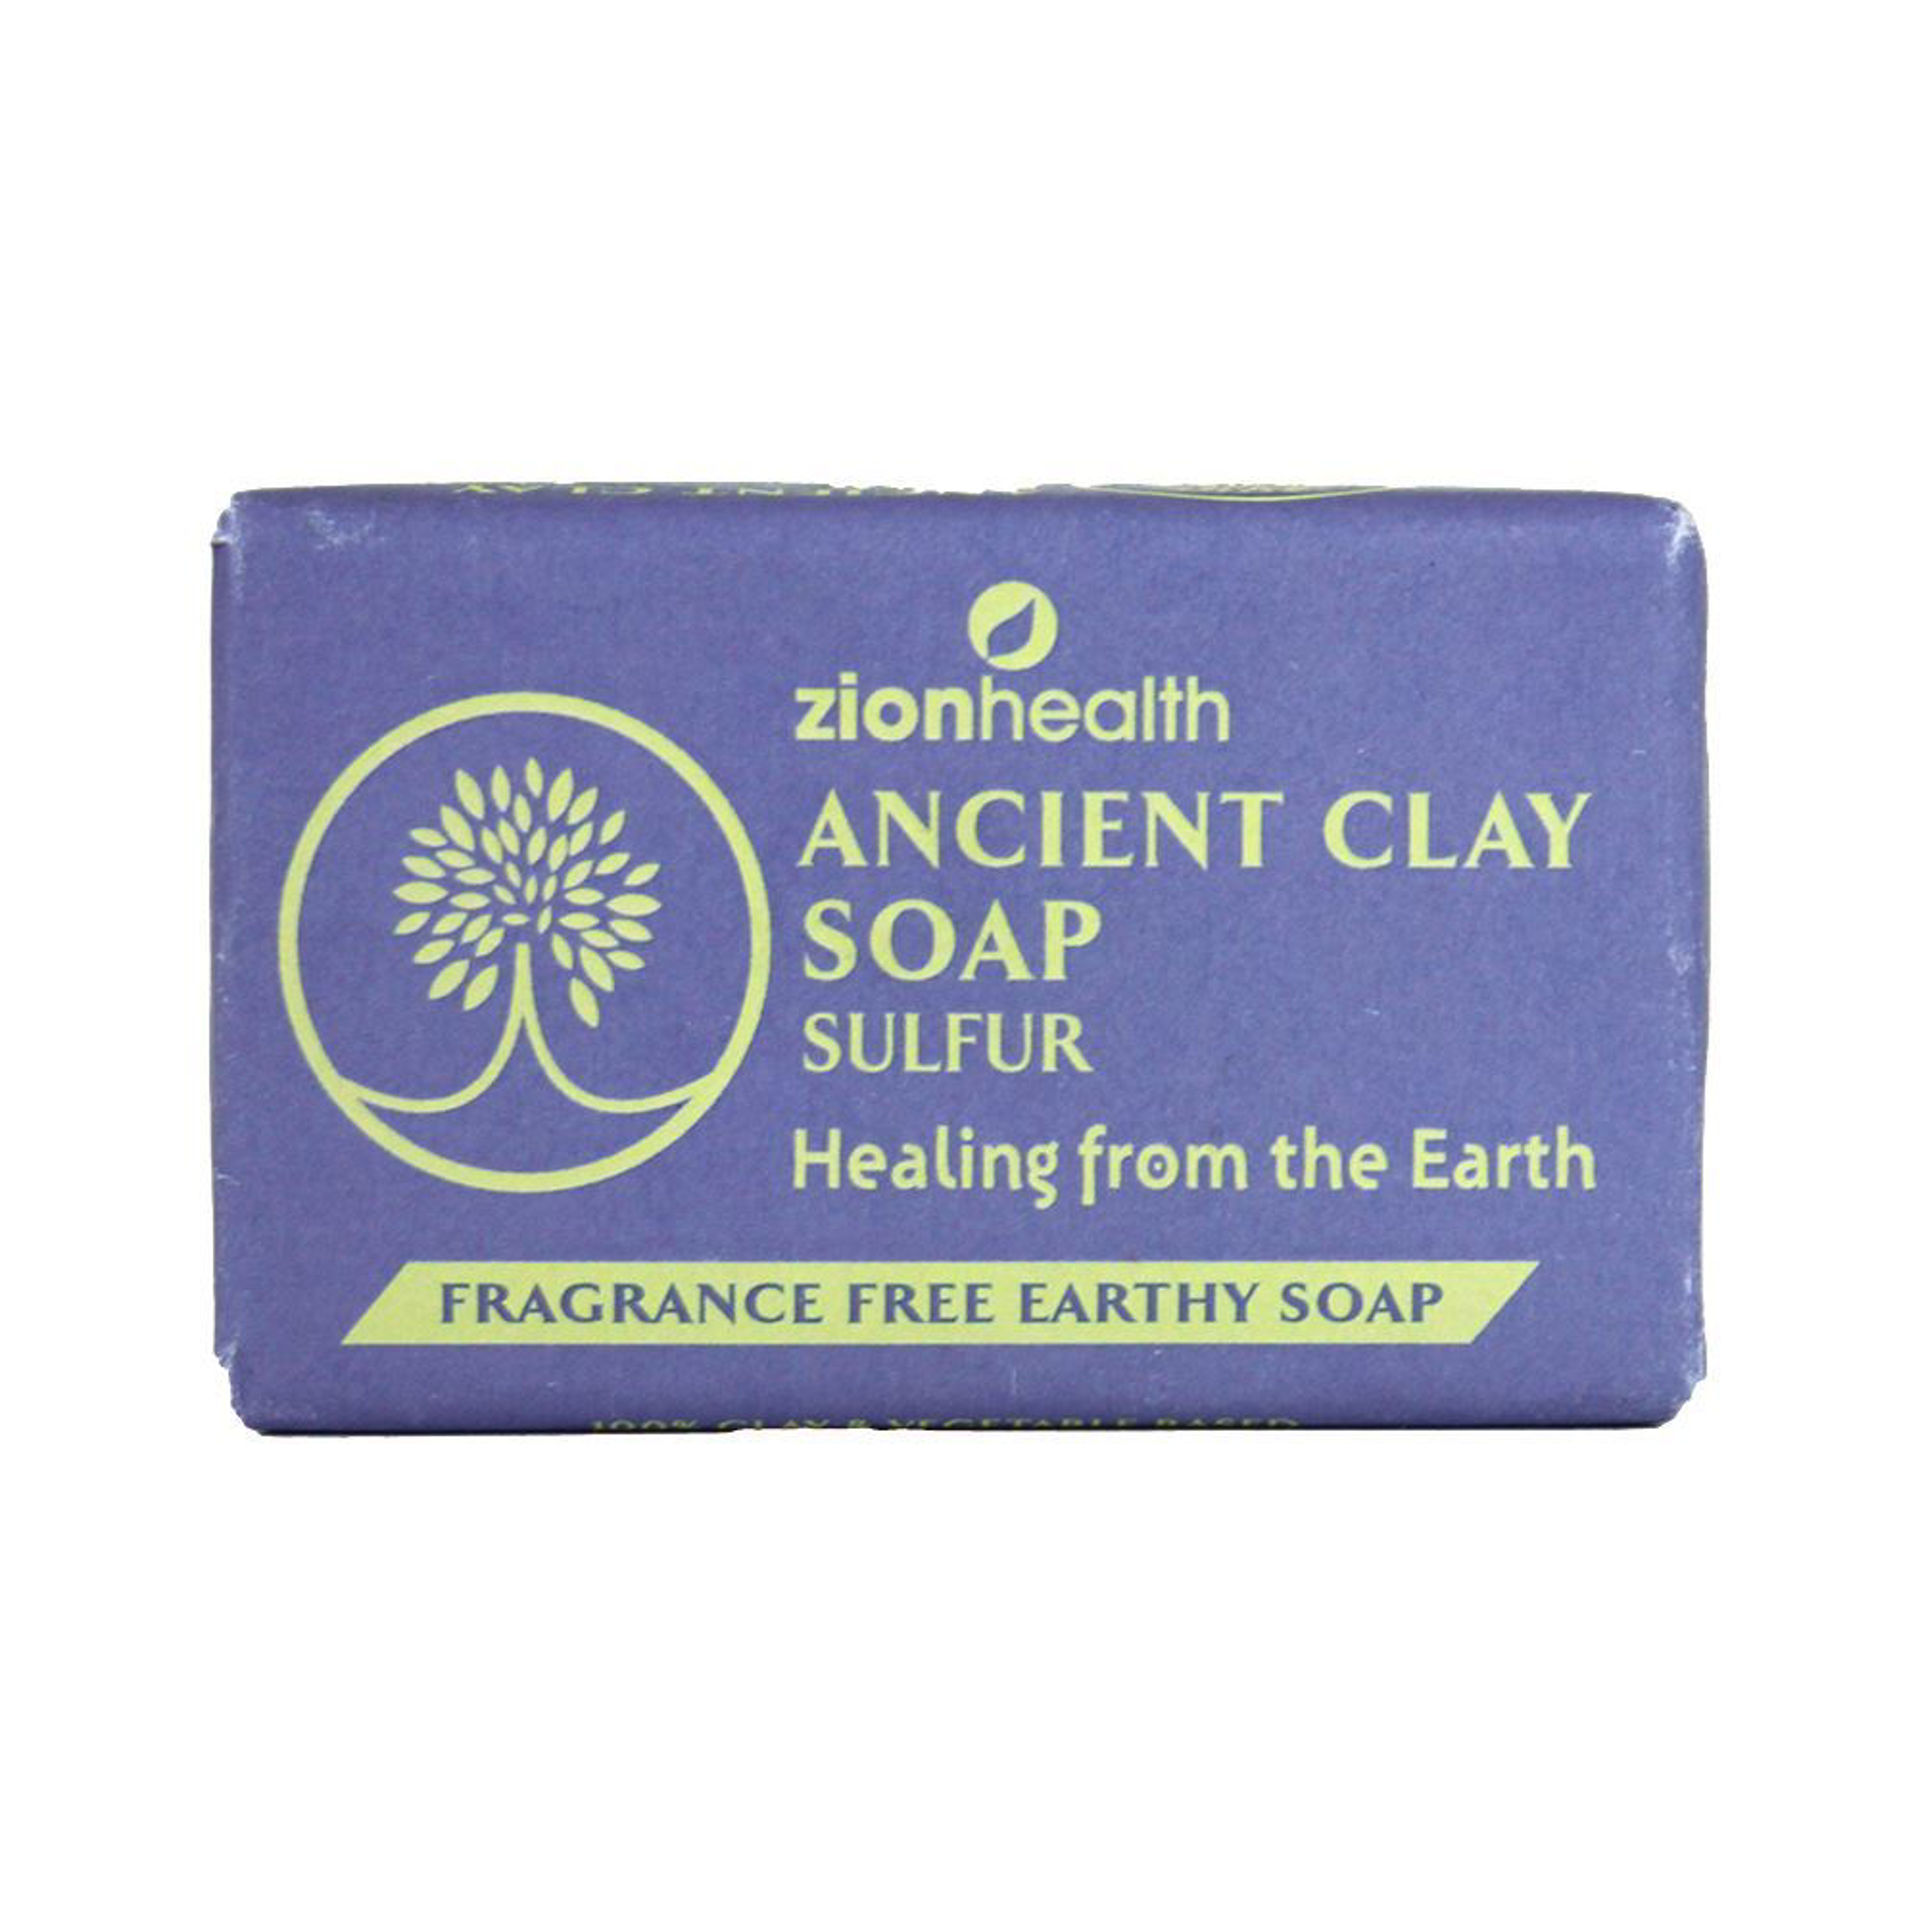 Picture of Sulfur Ancient Clay Soap - 6 oz.